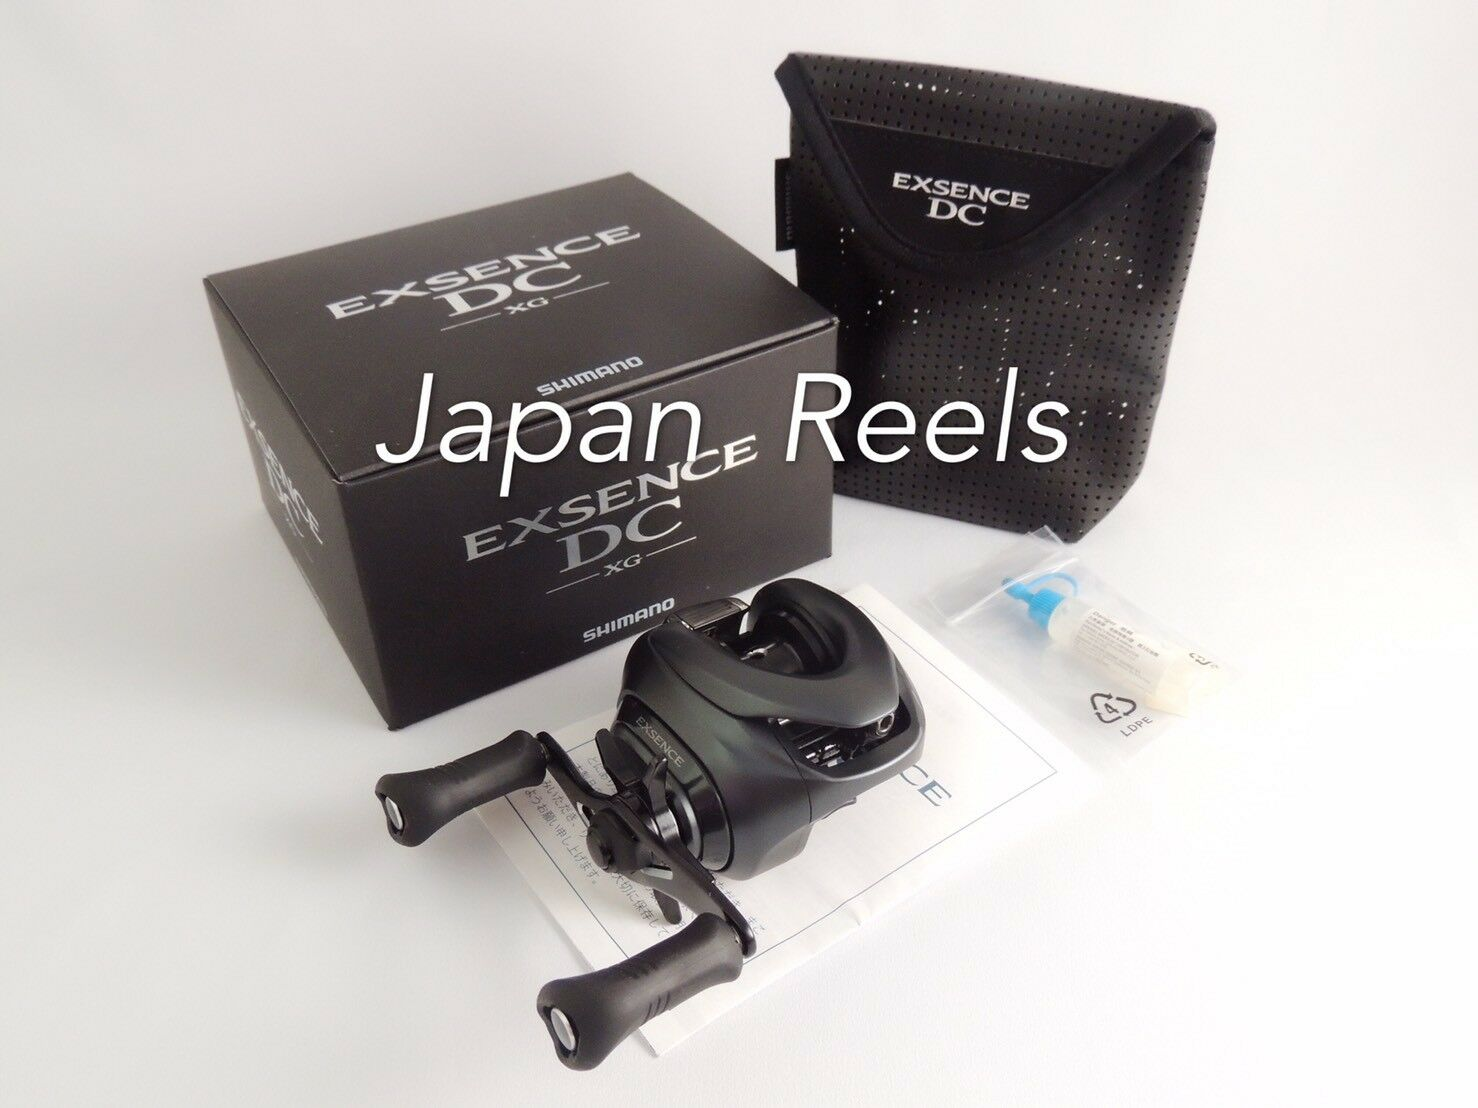 NEW SHIMANO 17 EXSENCE DC XG RIGHT HANDLE CASTING REEL 1-3 DAYS FAST DELIVERY